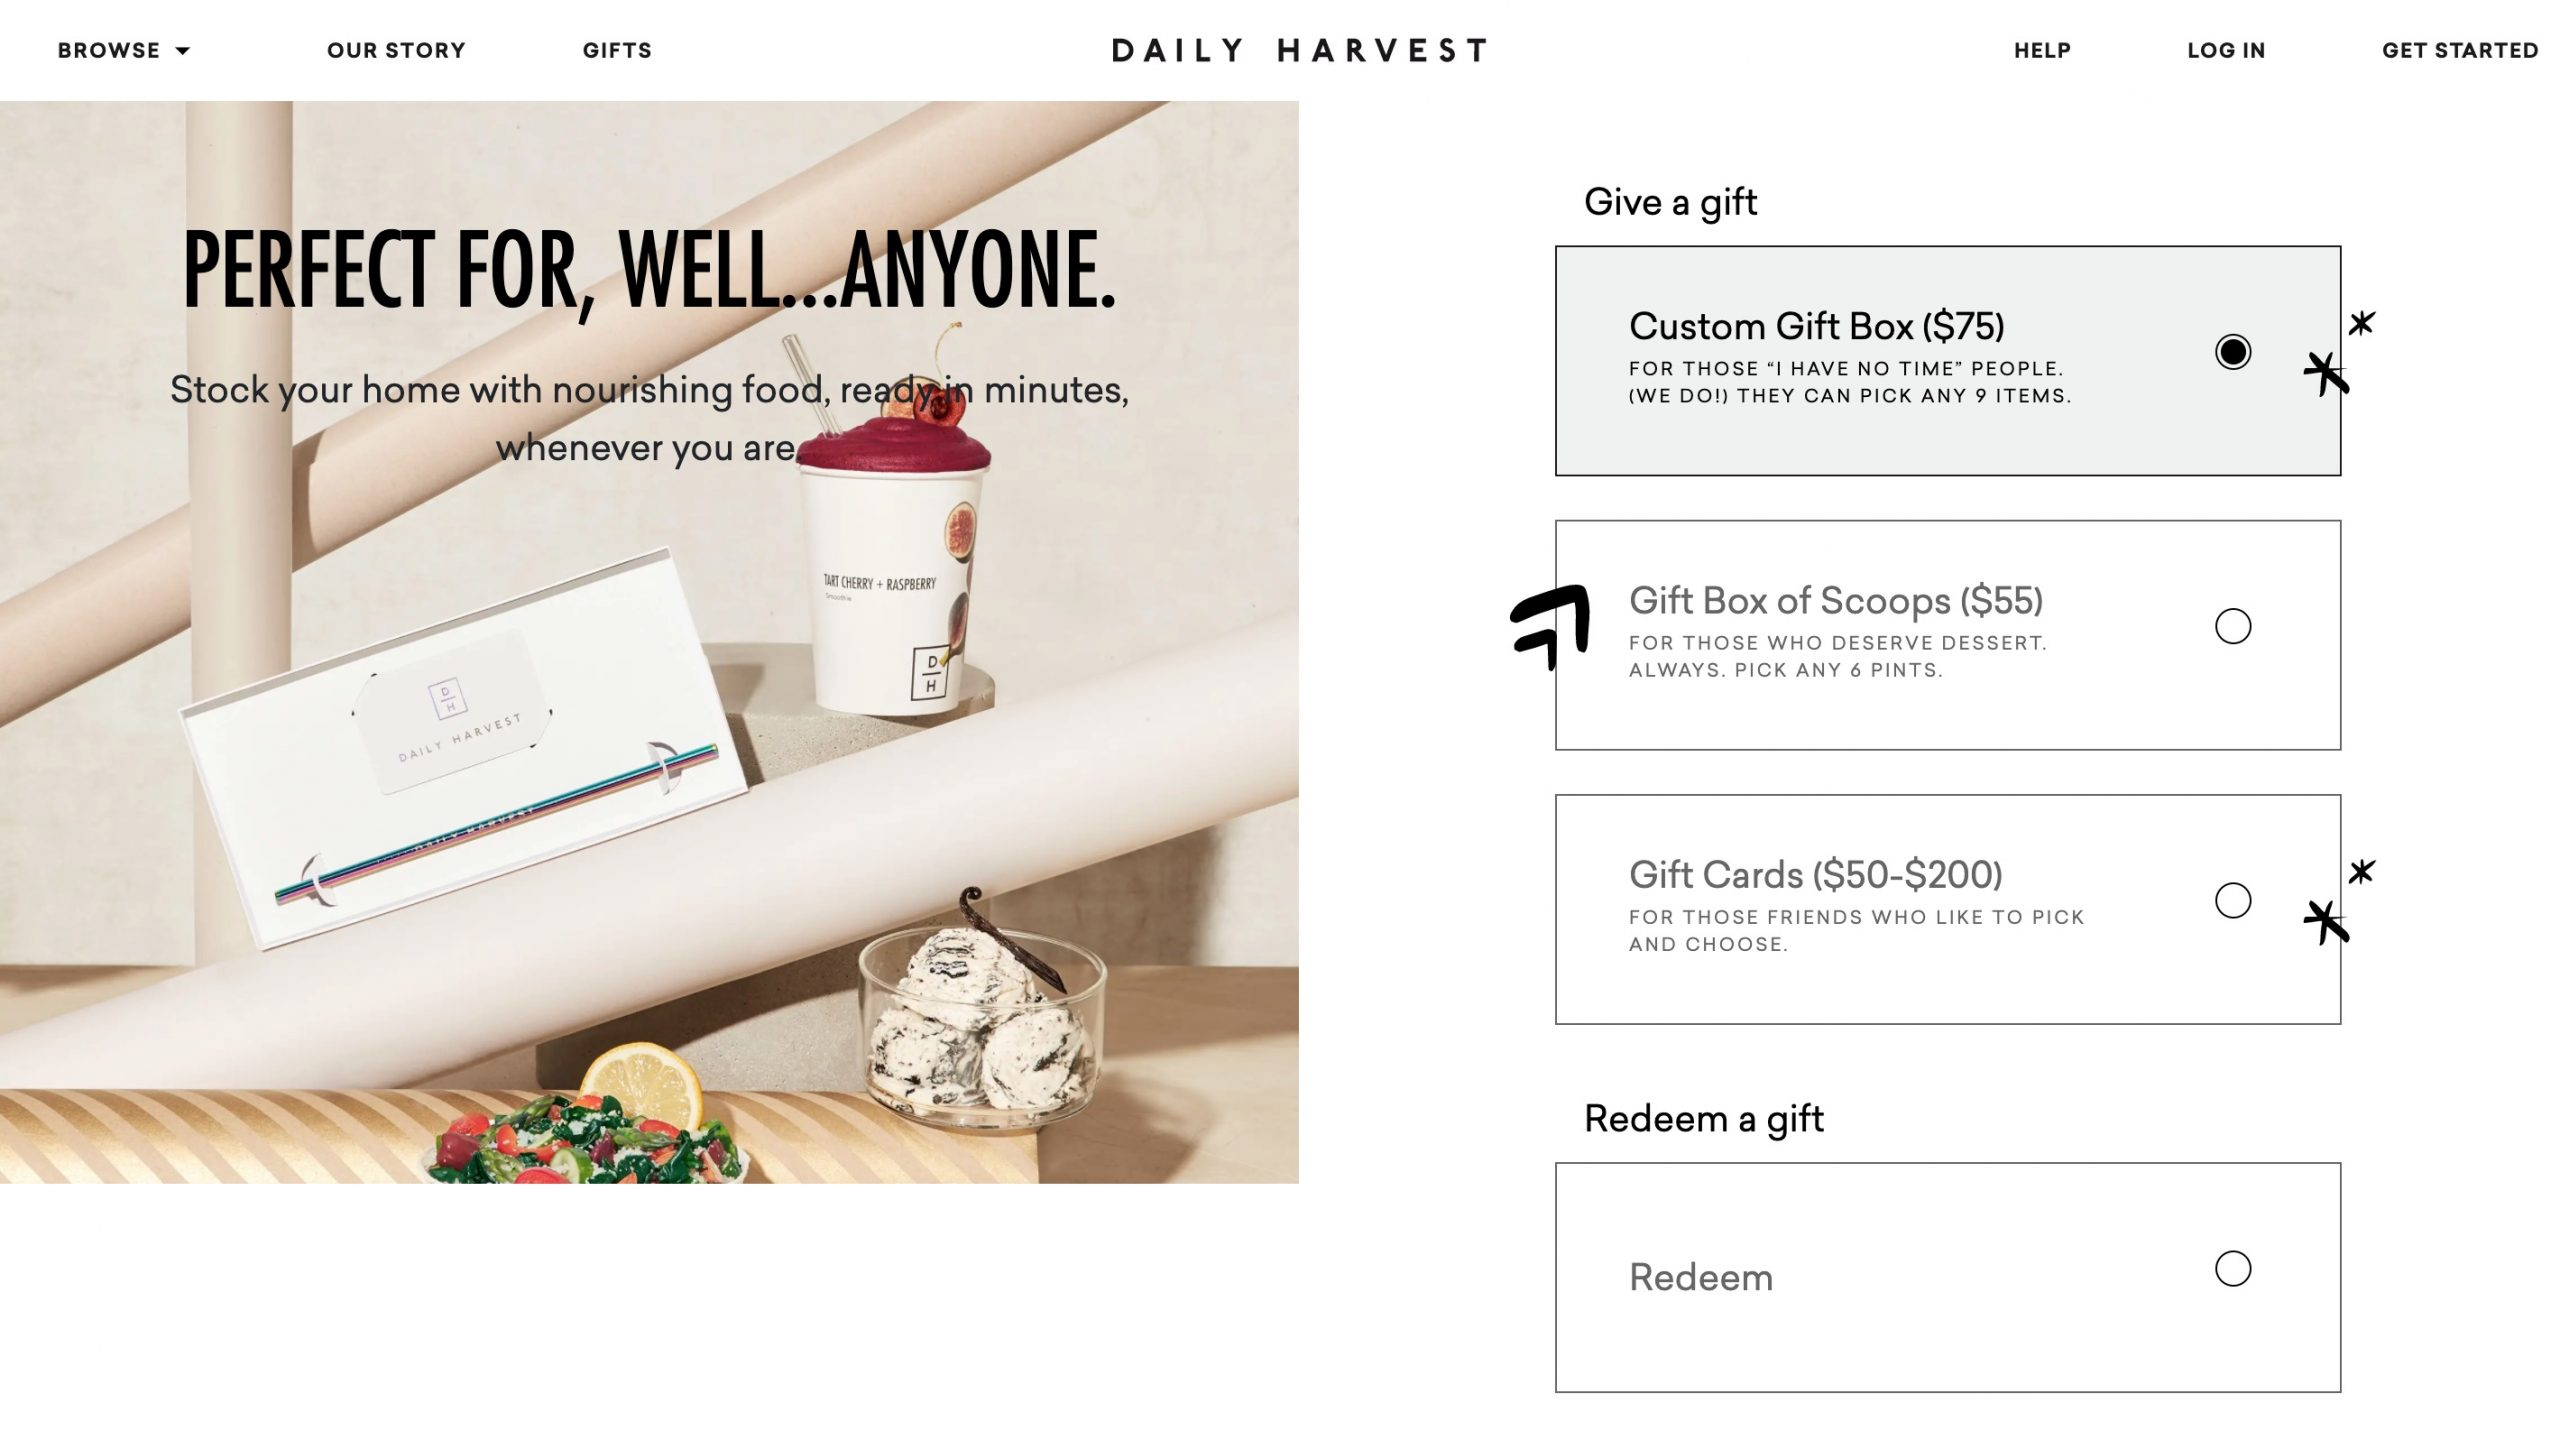 Daily Harvest gift cards